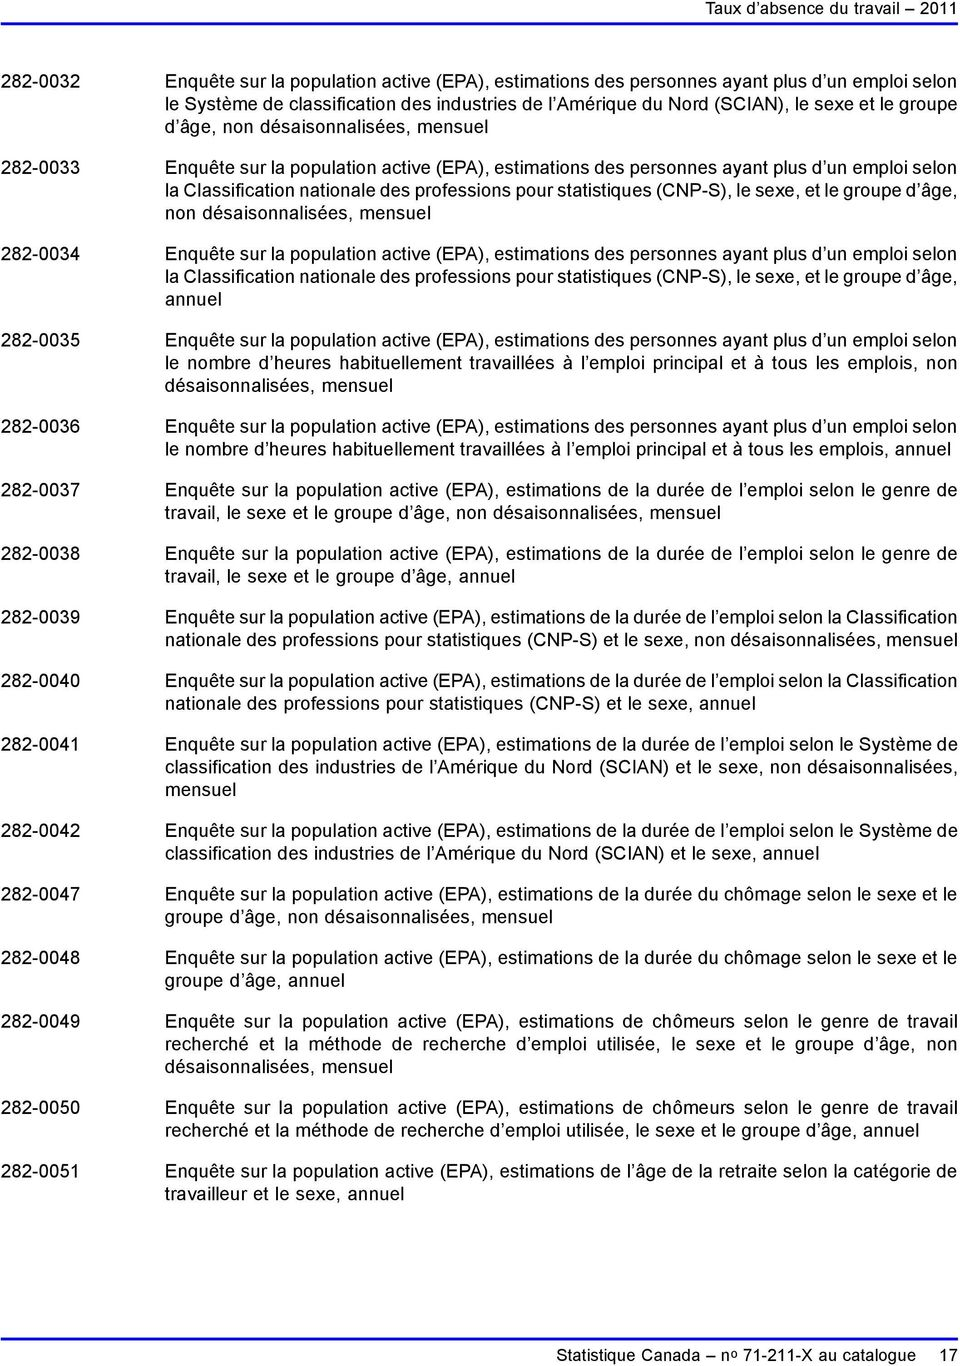 (CNP-S), le sexe, et le grpe d âge, non désaisonnalisées, mensuel 282-0034 Enquête sur la population active (EPA), estimations des personnes ayant plus d un emploi selon la Classification nationale